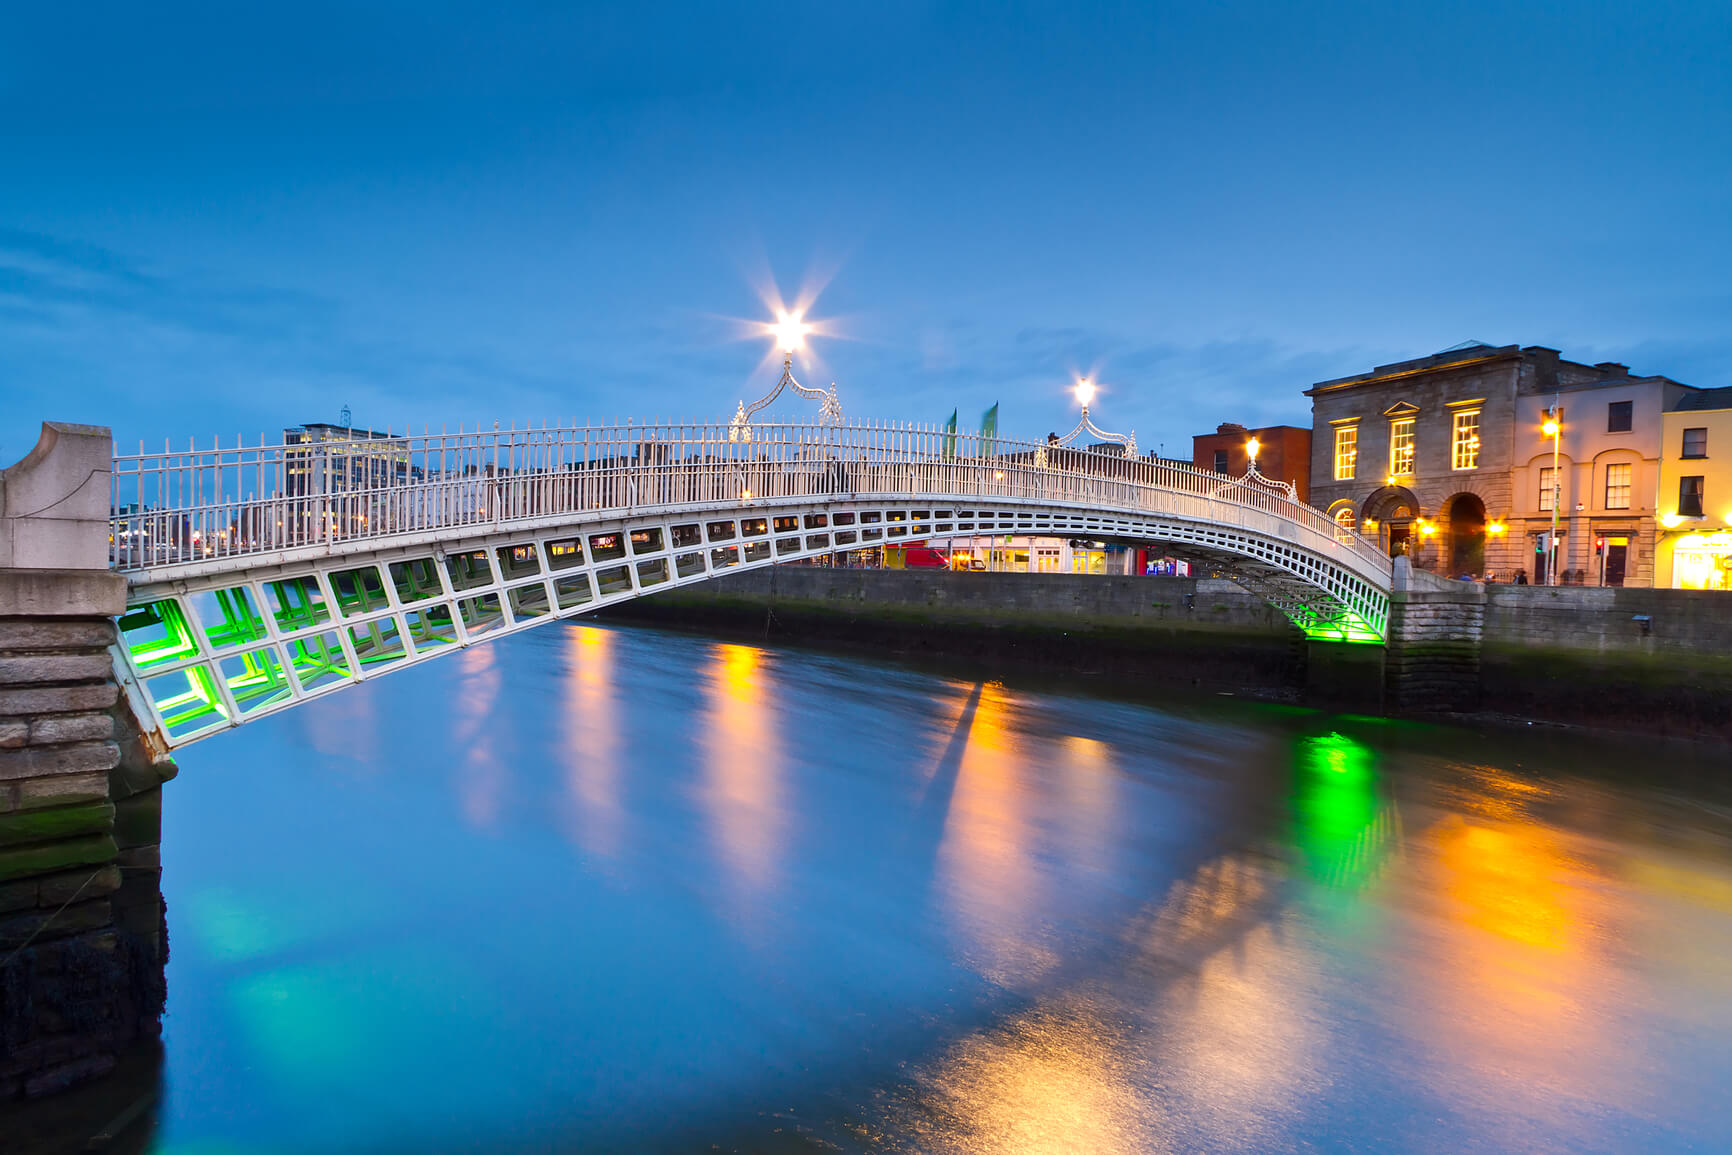 **EXPIRED** ERROR FARE: Non-stop from Toronto, Canada to Dublin, Ireland for only $287 CAD roundtrip